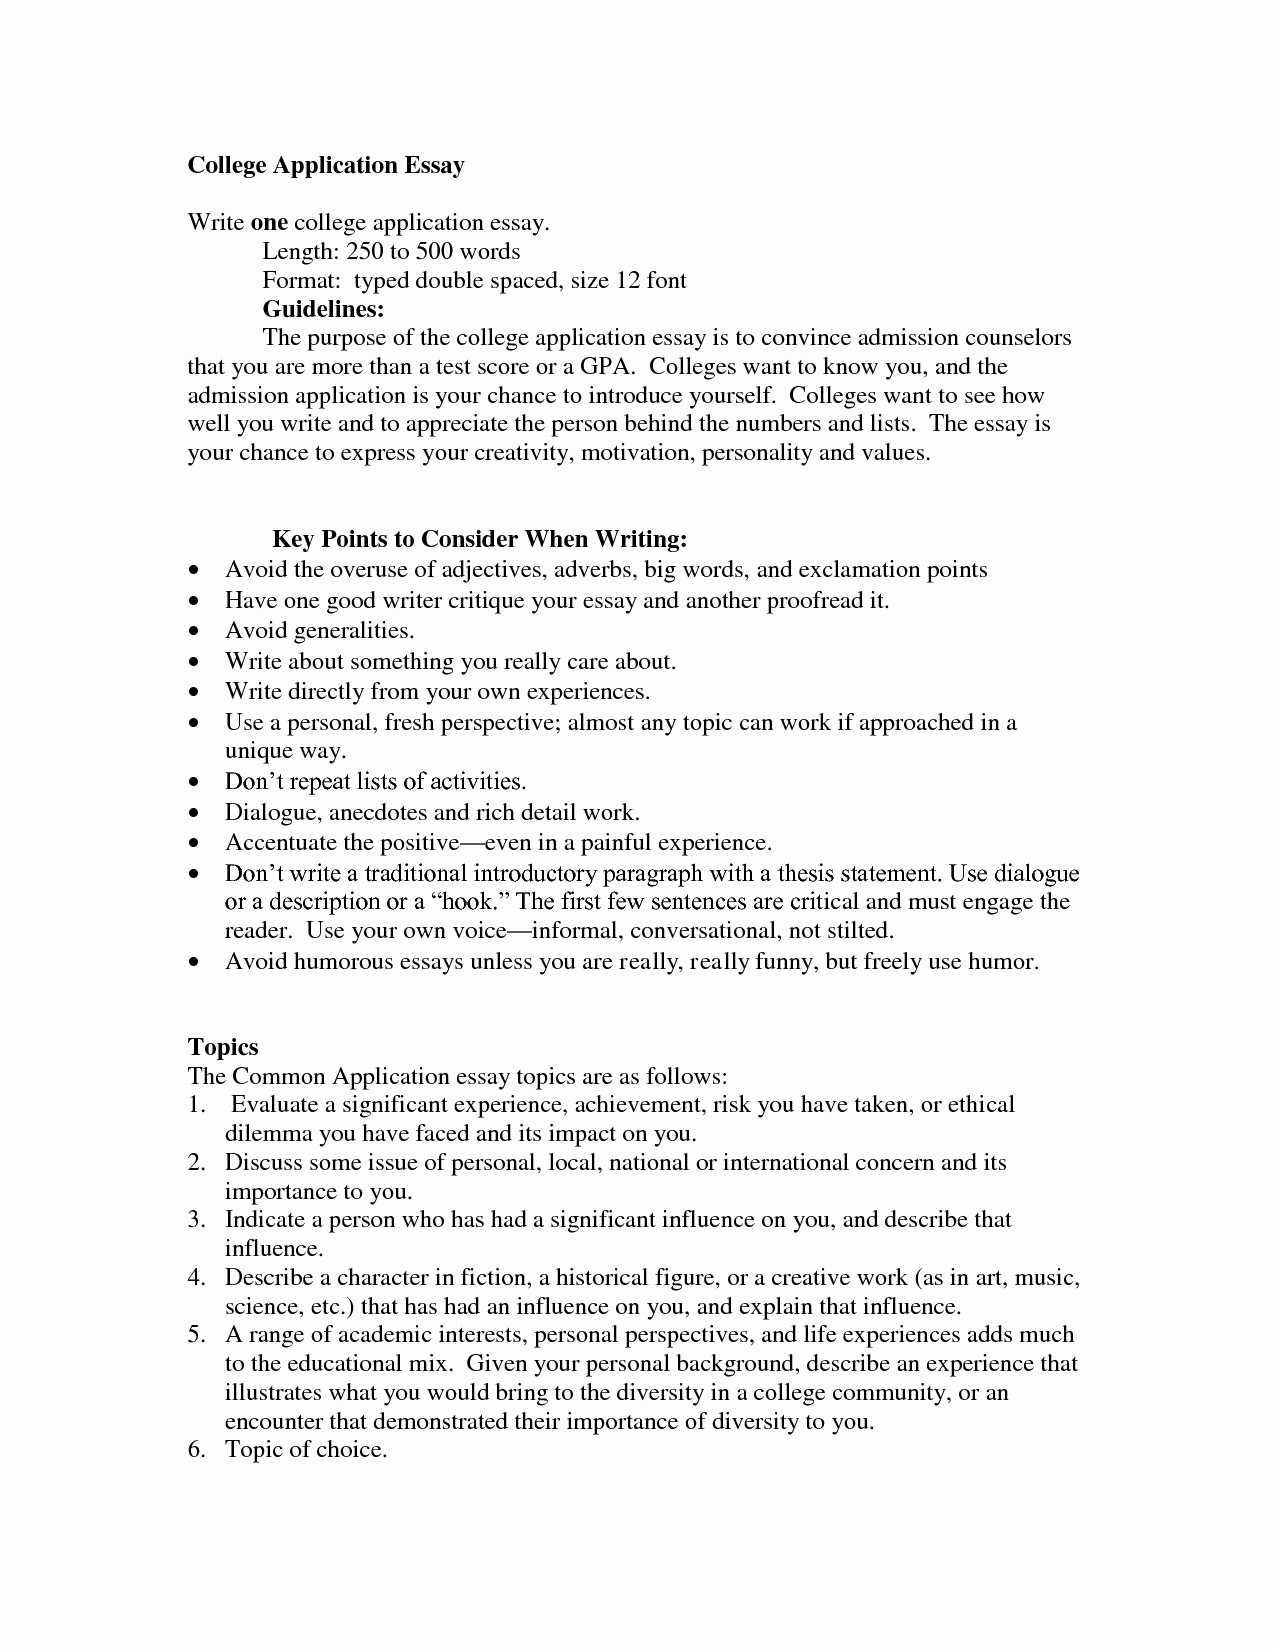 Mla format for College Essay New College Admissions Essay format Heading Example